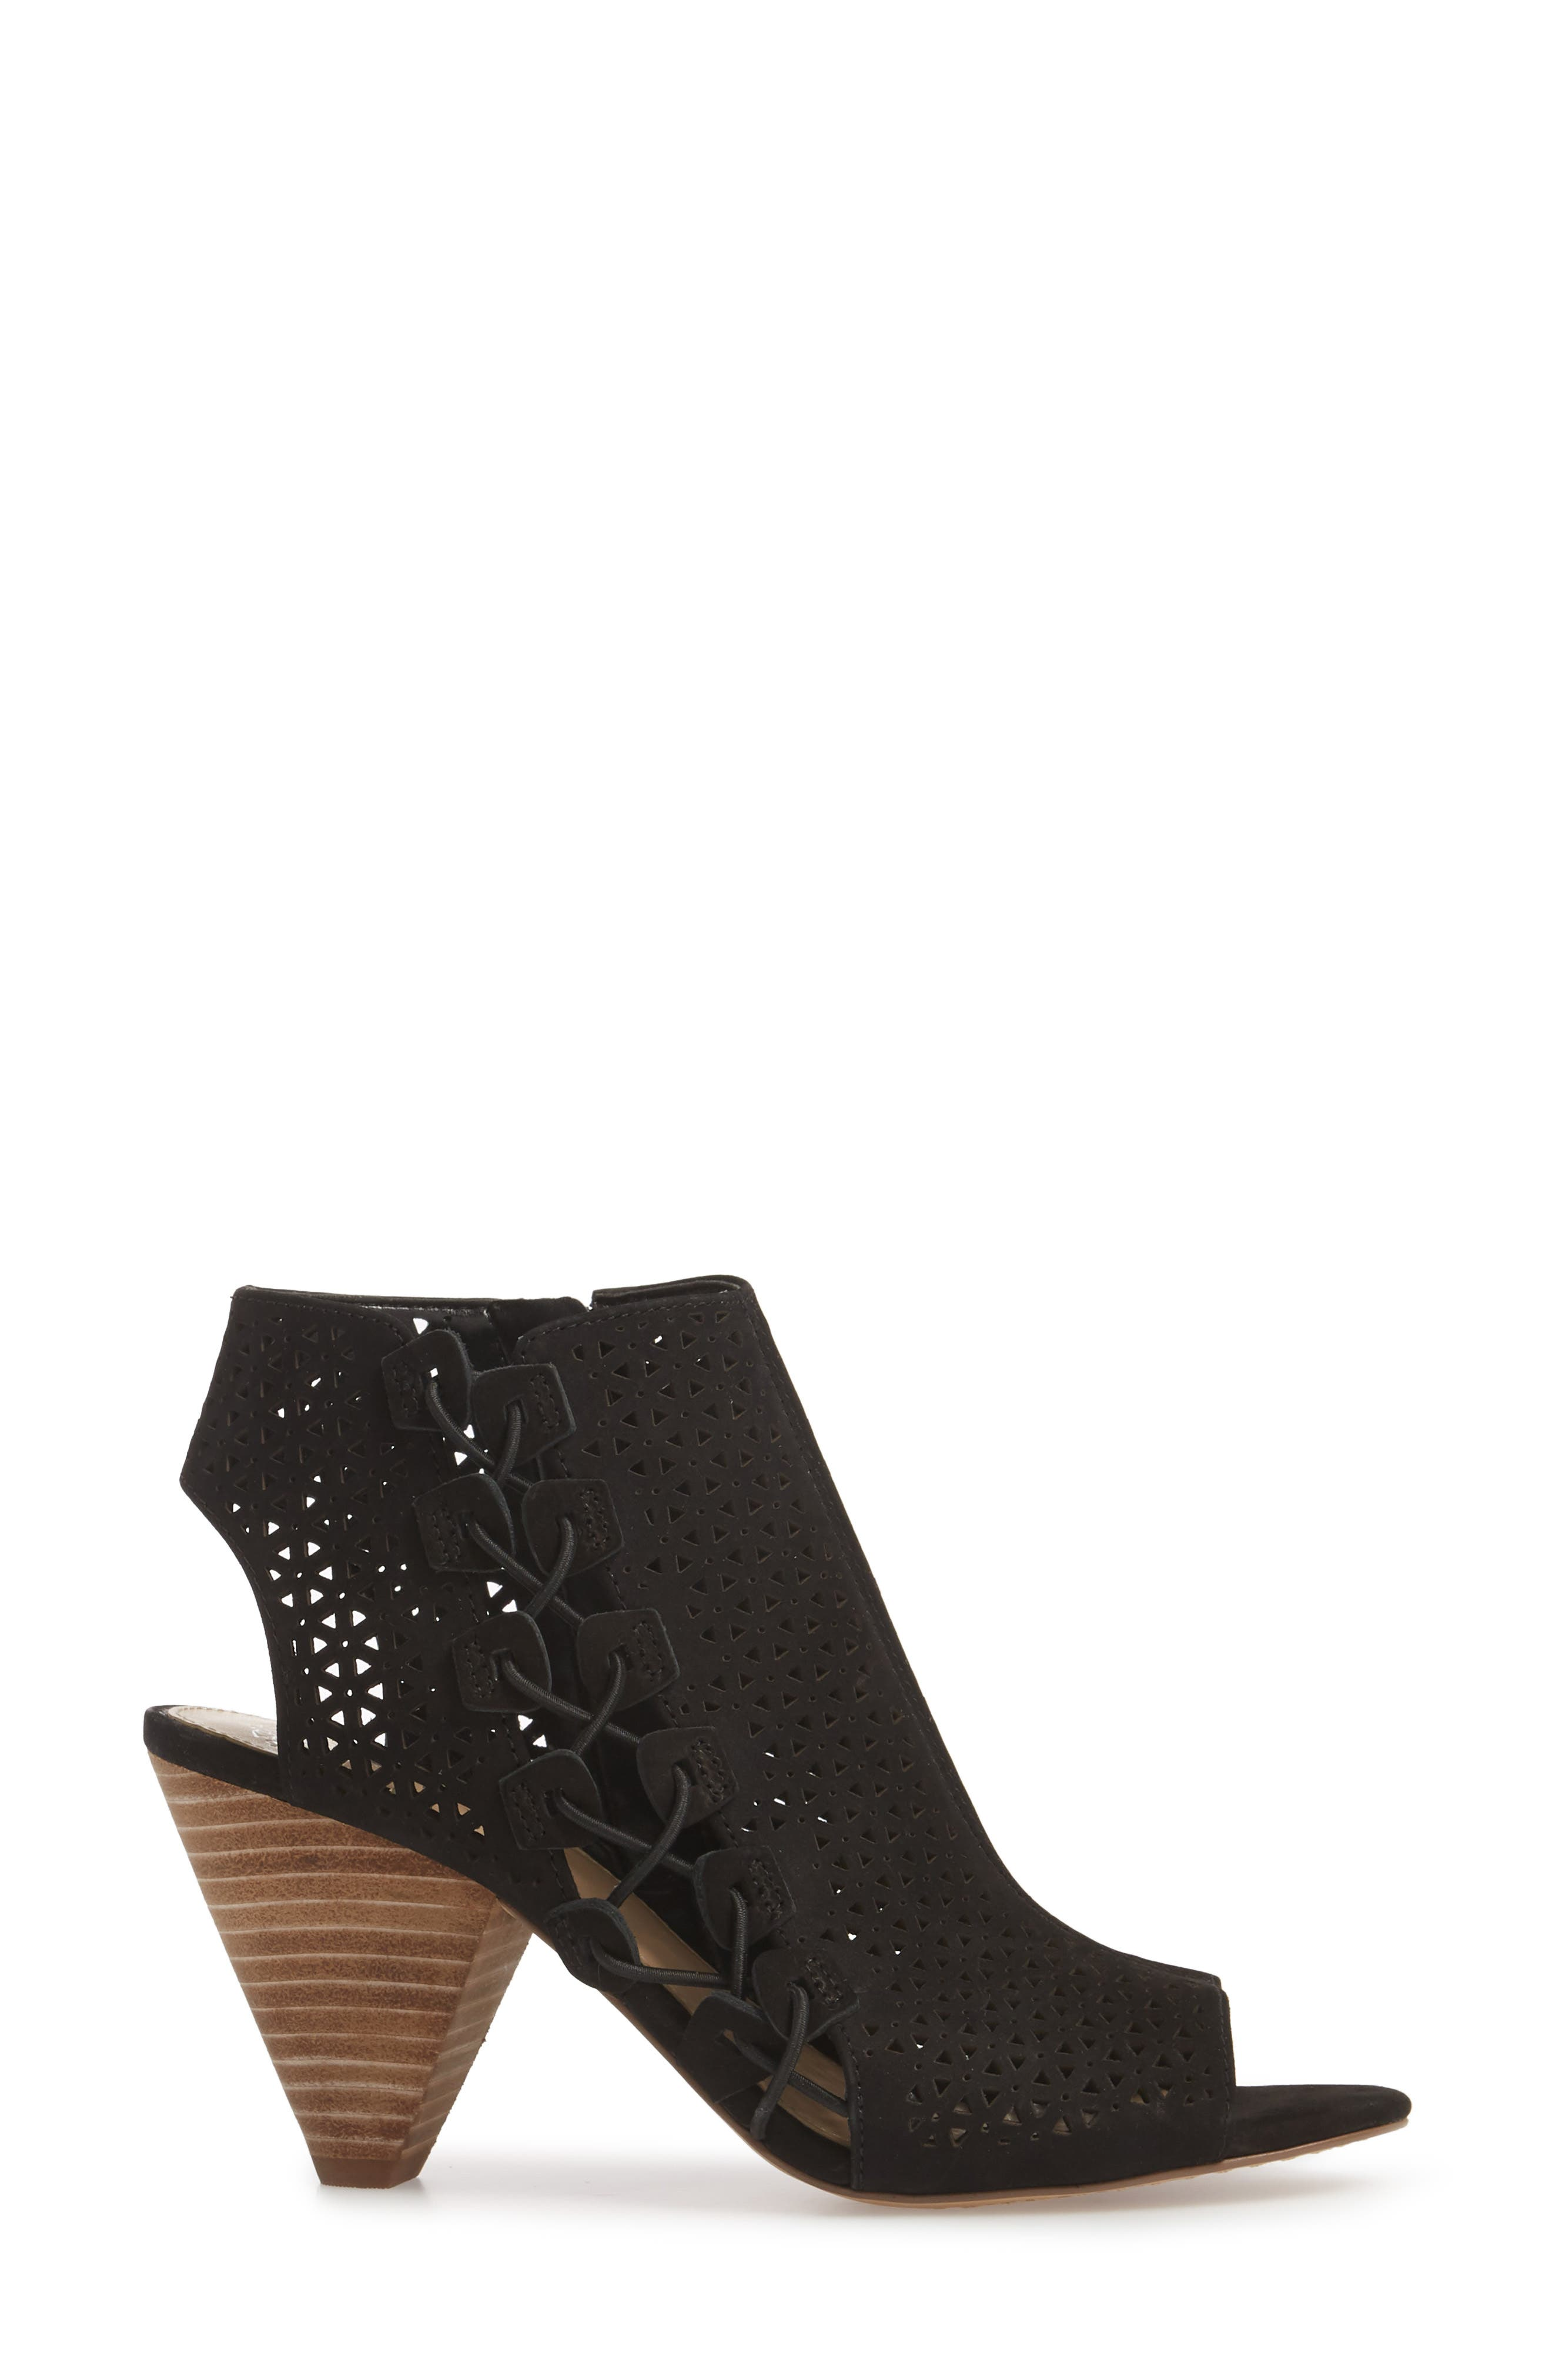 Elison Bootie,                             Alternate thumbnail 3, color,                             Black Leather